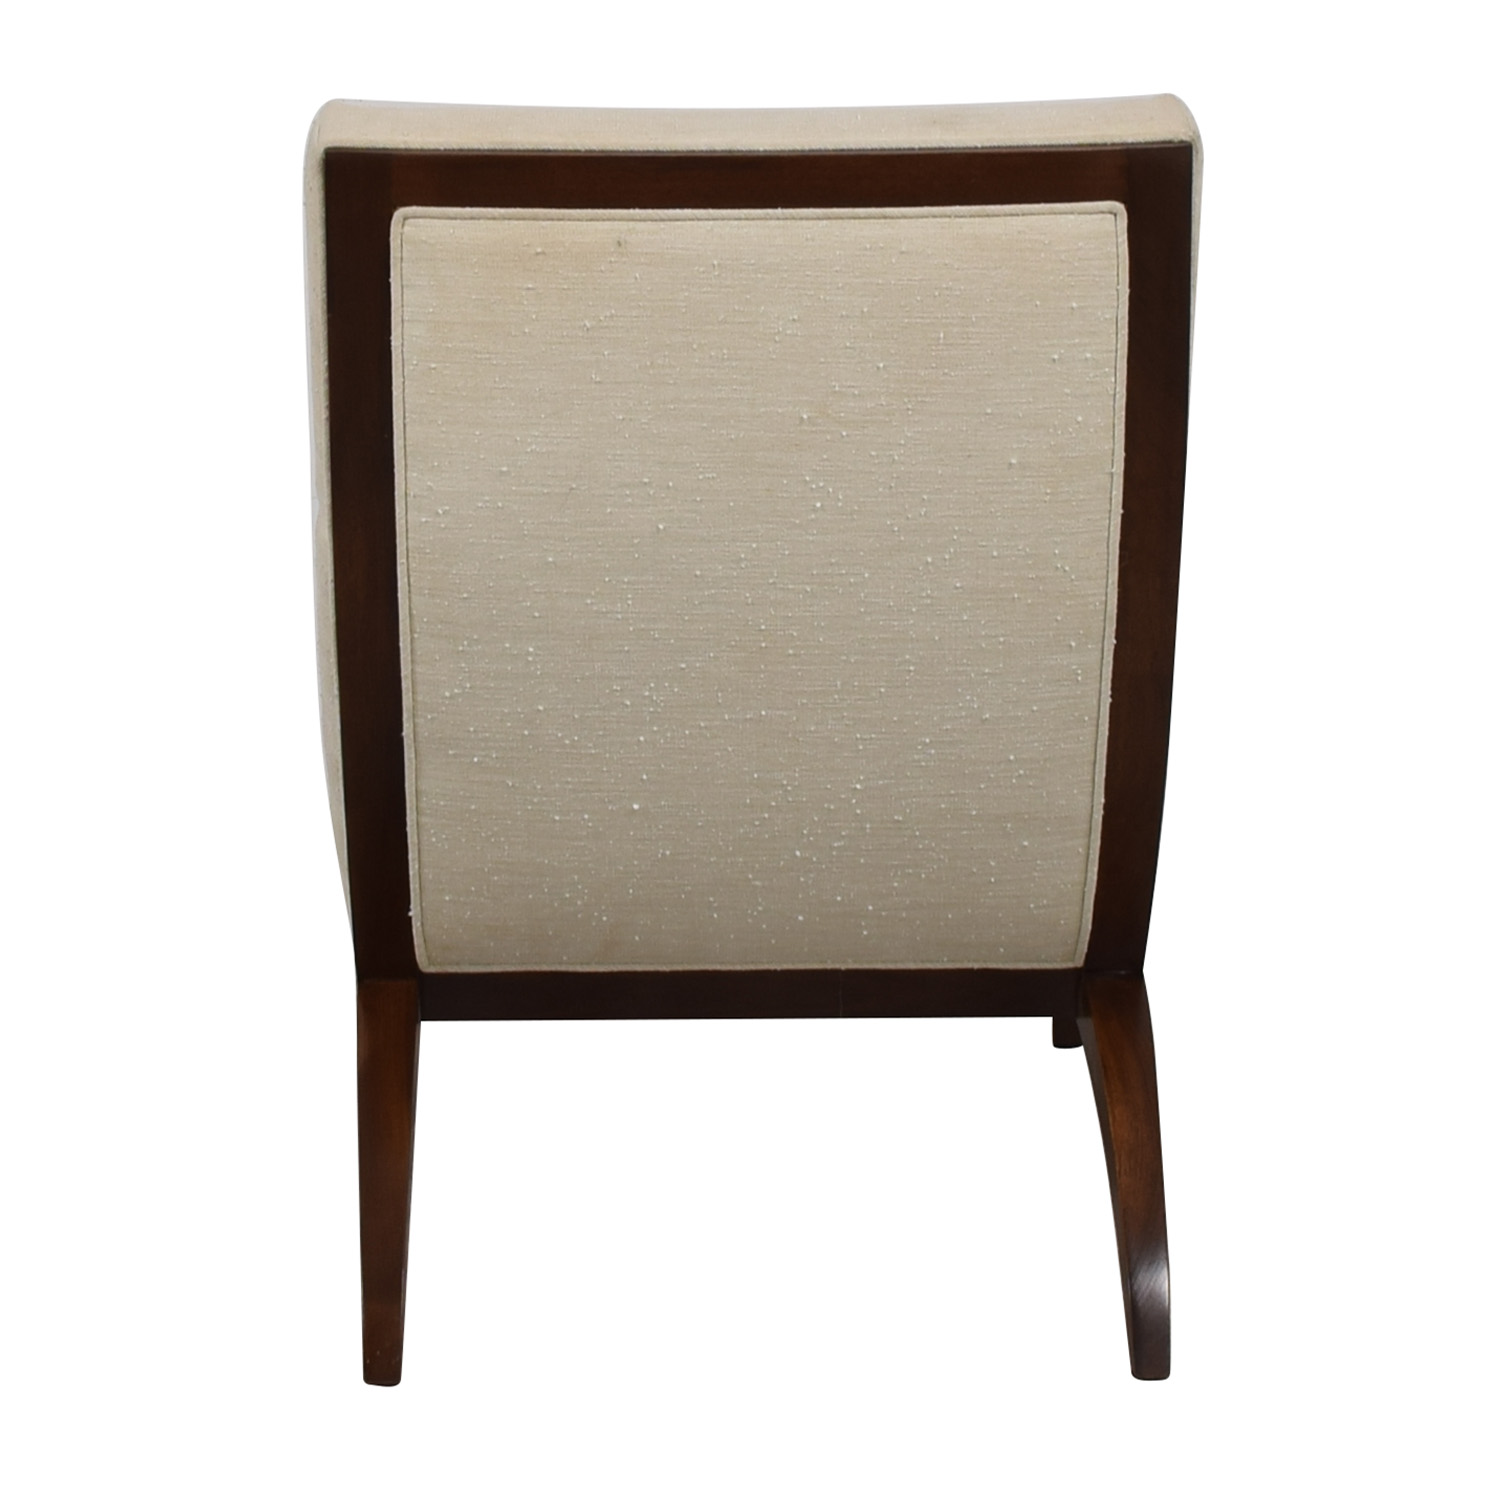 shop Furniture Masters White Linen Accent Chair Furniture Masters